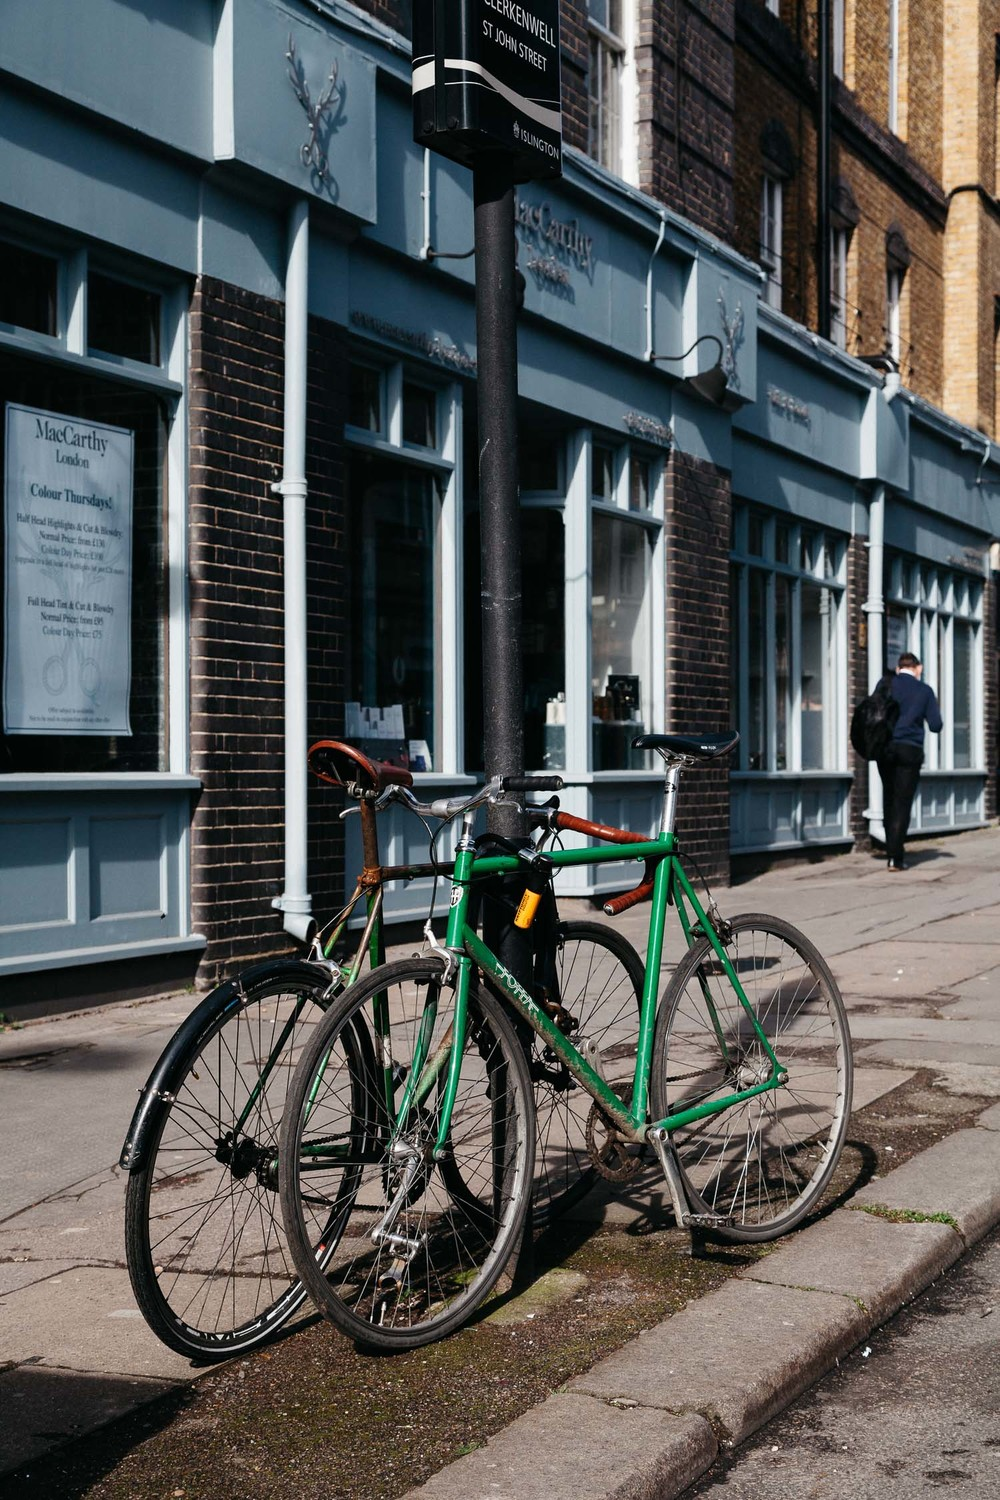 London - travel photography - On a hazy morning - Amsterdam